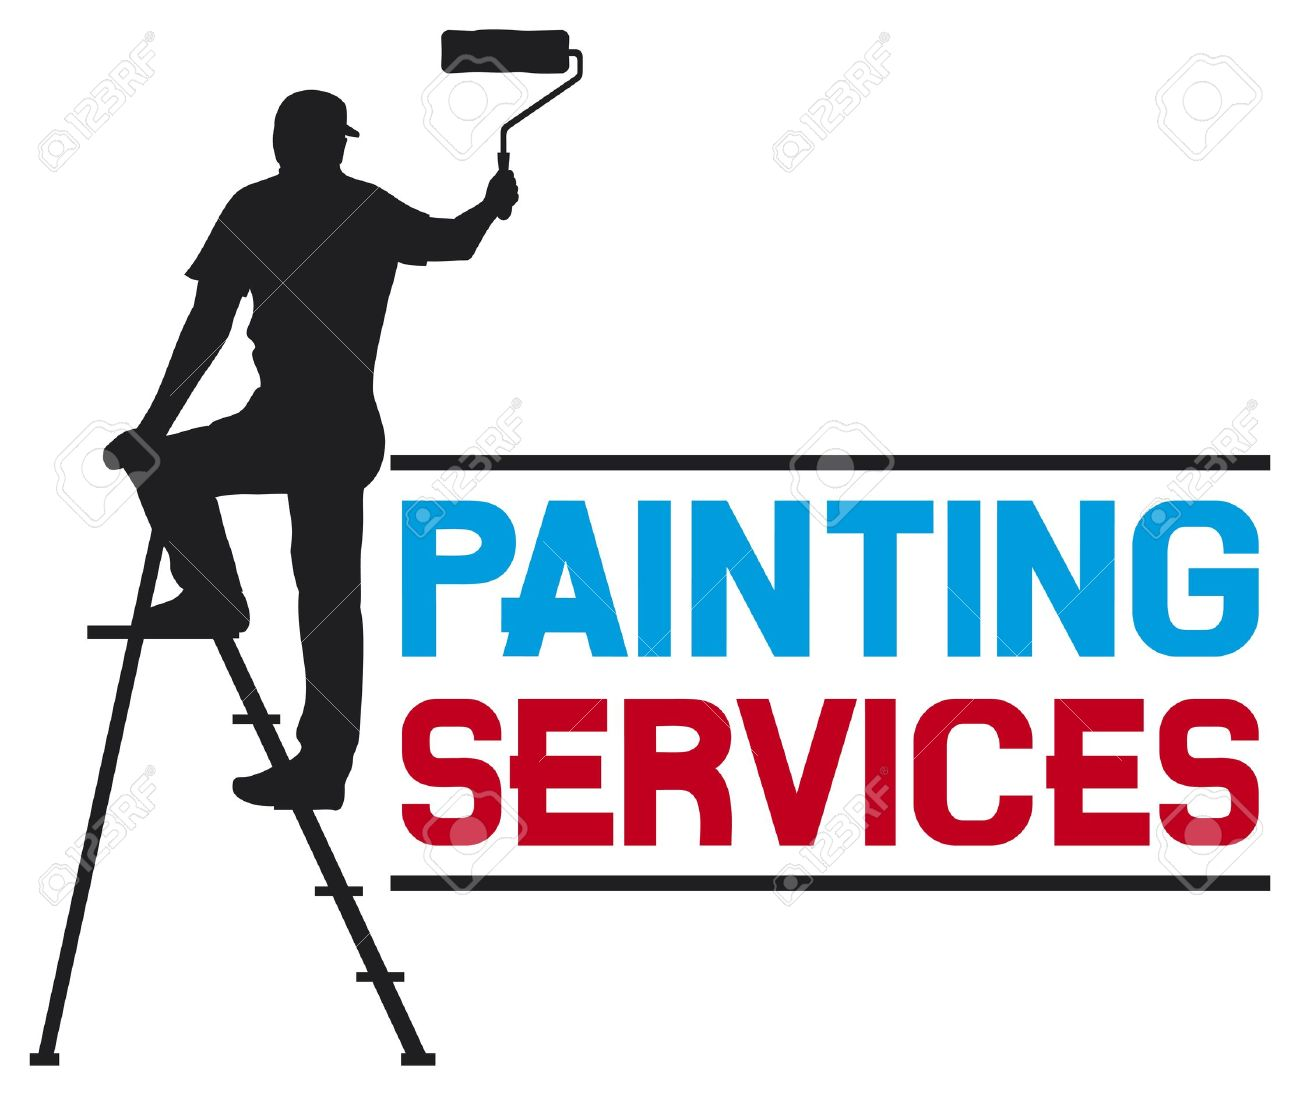 Painting Services Design Illustration Of A Man Painting The